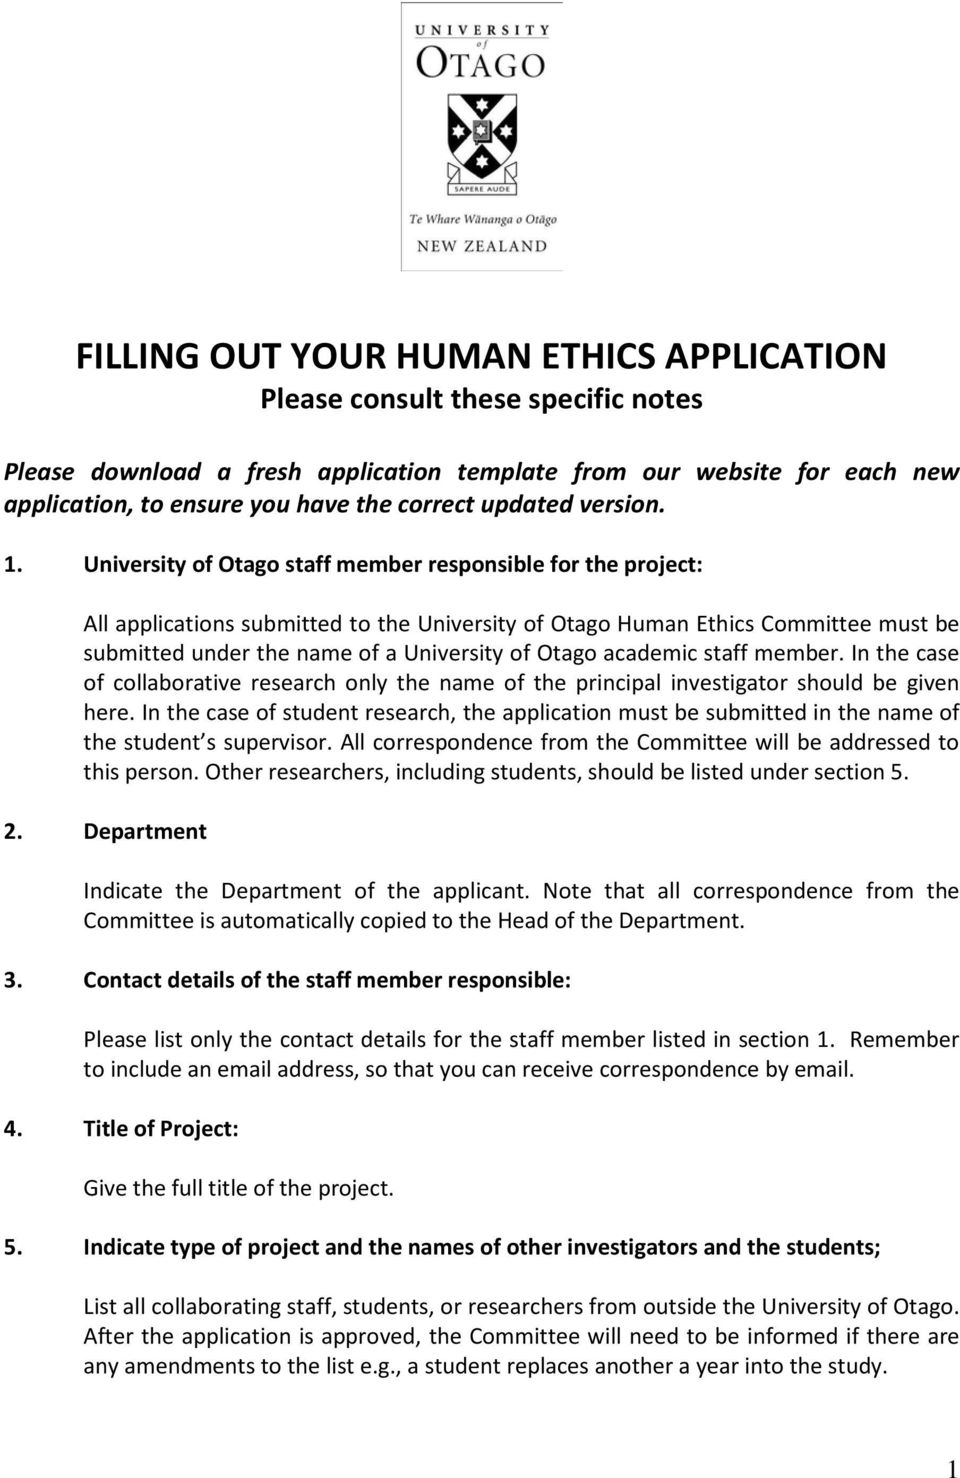 University of Otago staff member responsible for the project: All applications submitted to the University of Otago Human Ethics Committee must be submitted under the name of a University of Otago